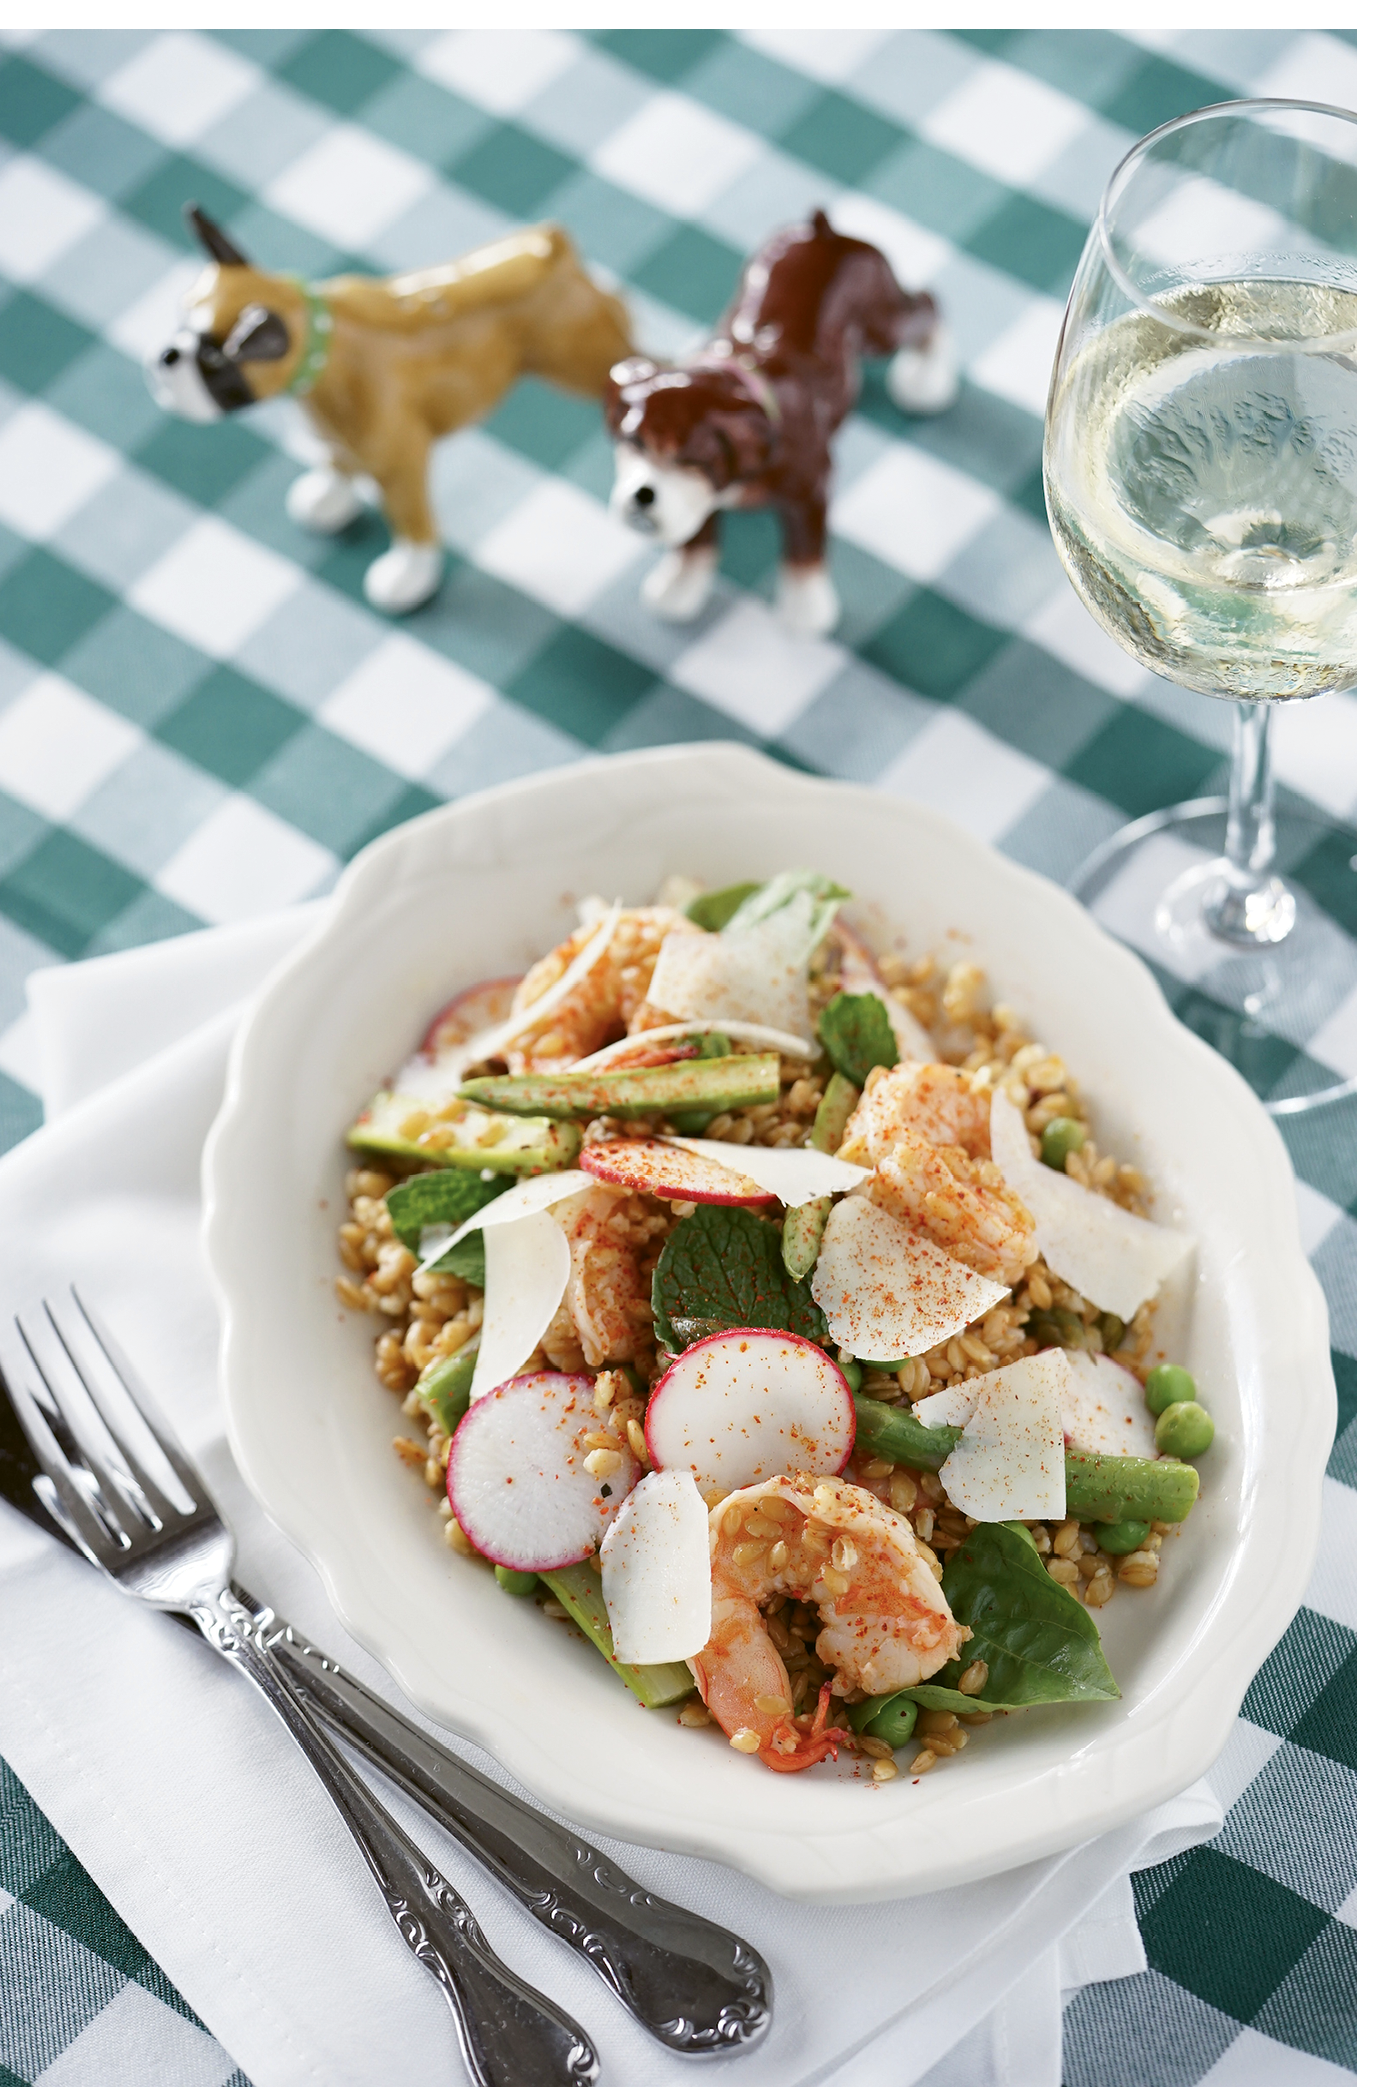 Goodbye, Grits: The shrimp and farro starter nestles fresh radishes, asparagus, peas, and herbs within a hearty serving of the nutty grain.